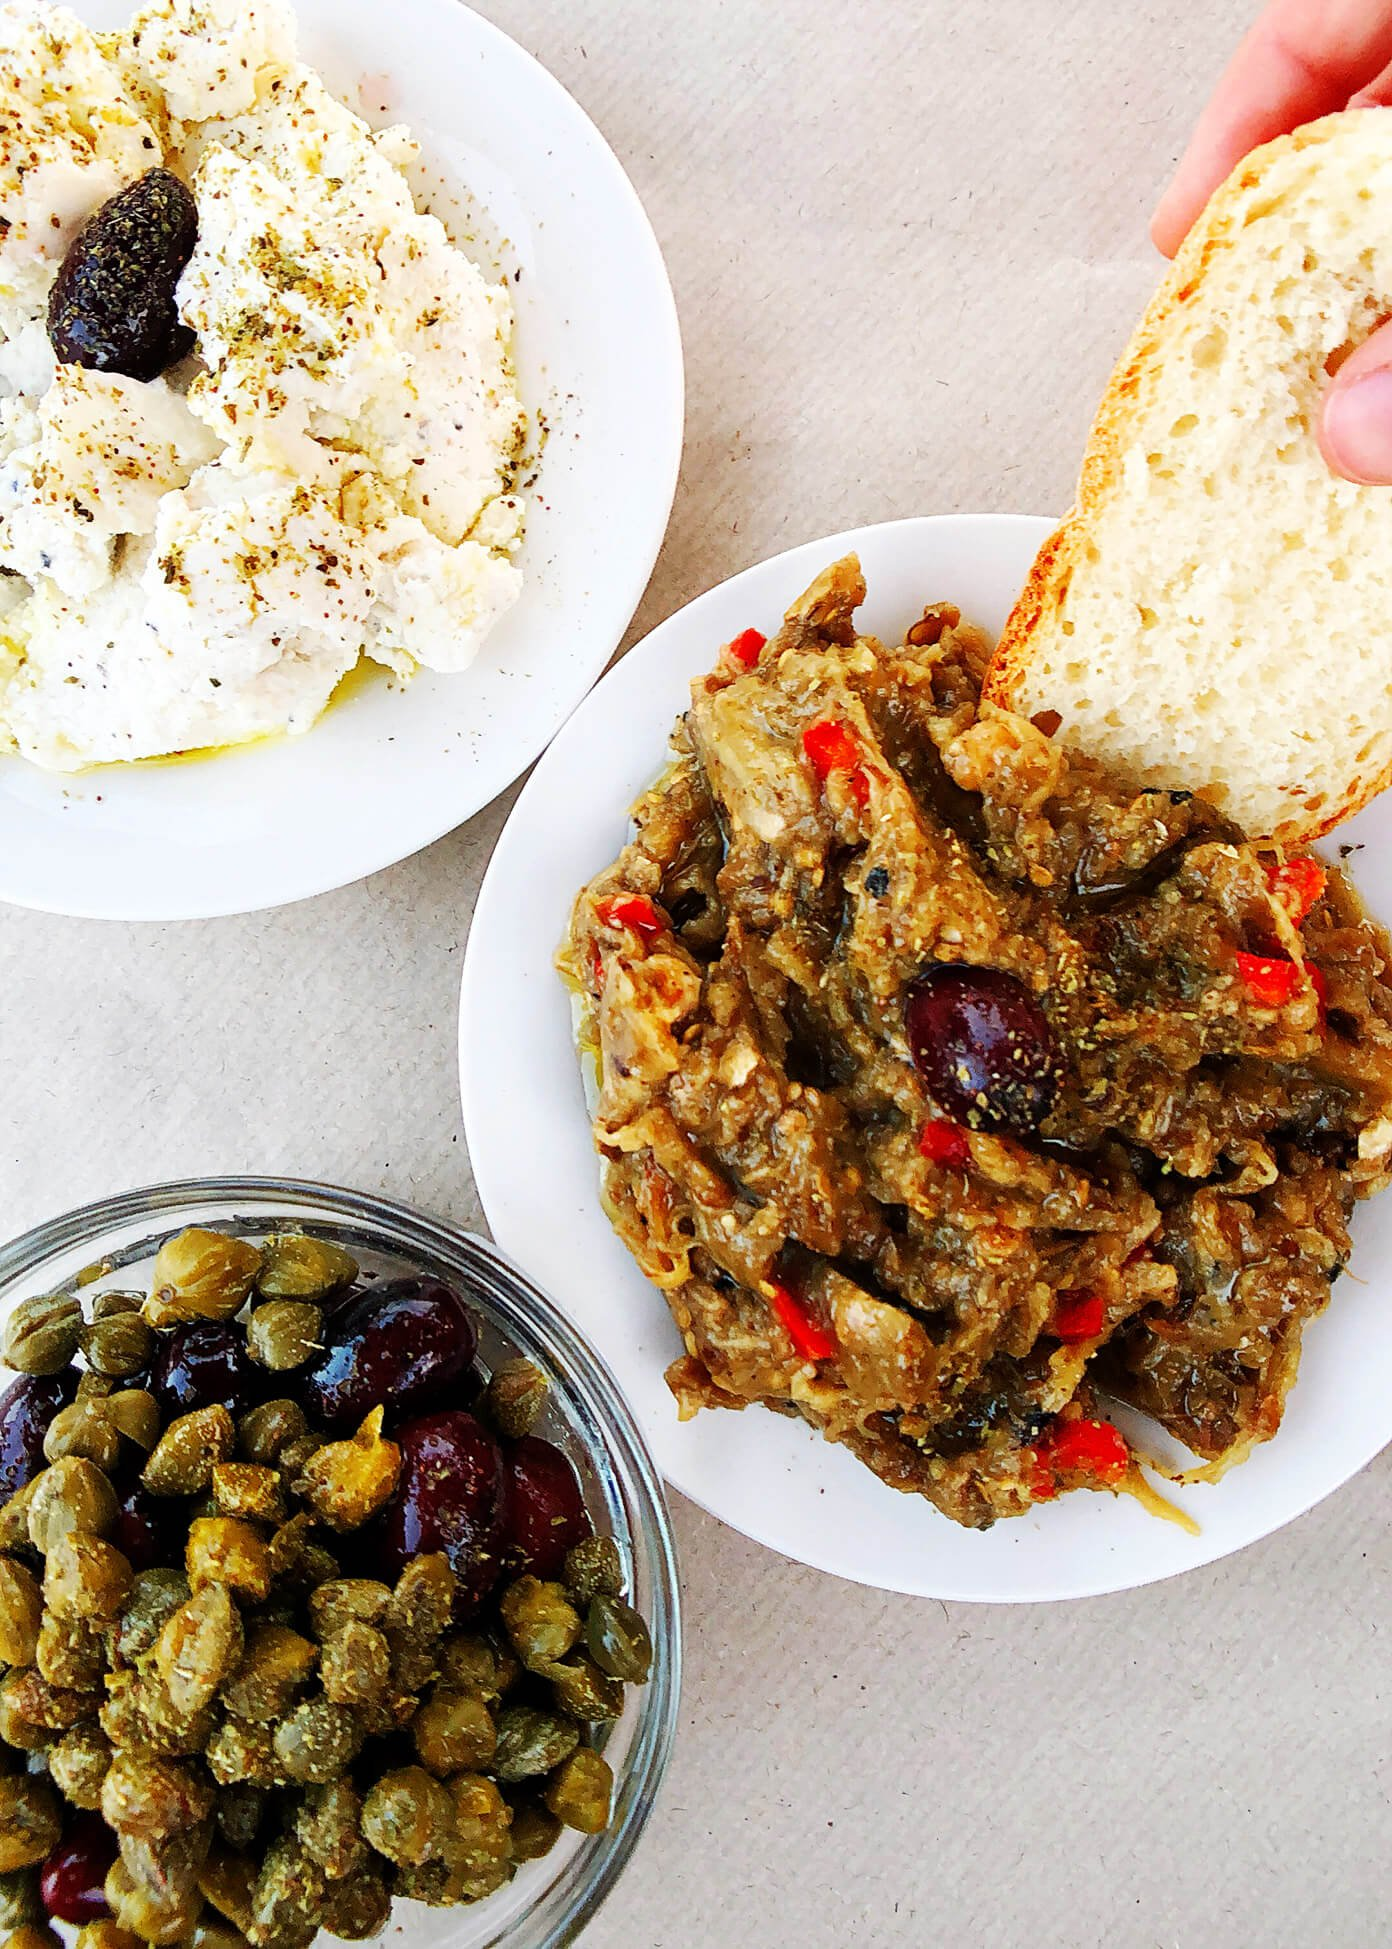 Greek Appetizer Dips with Bread in Folegandros, Greece